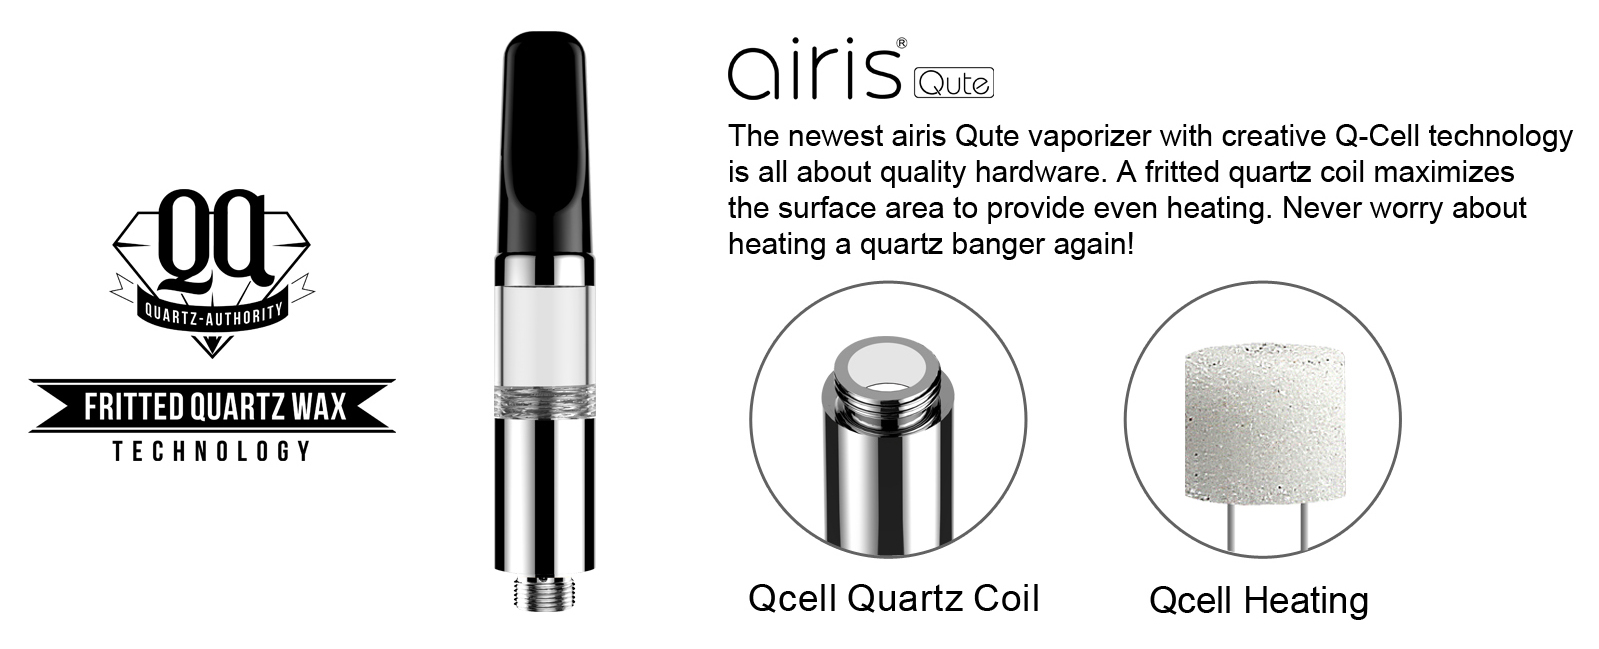 Airis Qute Vaporizer Features 02